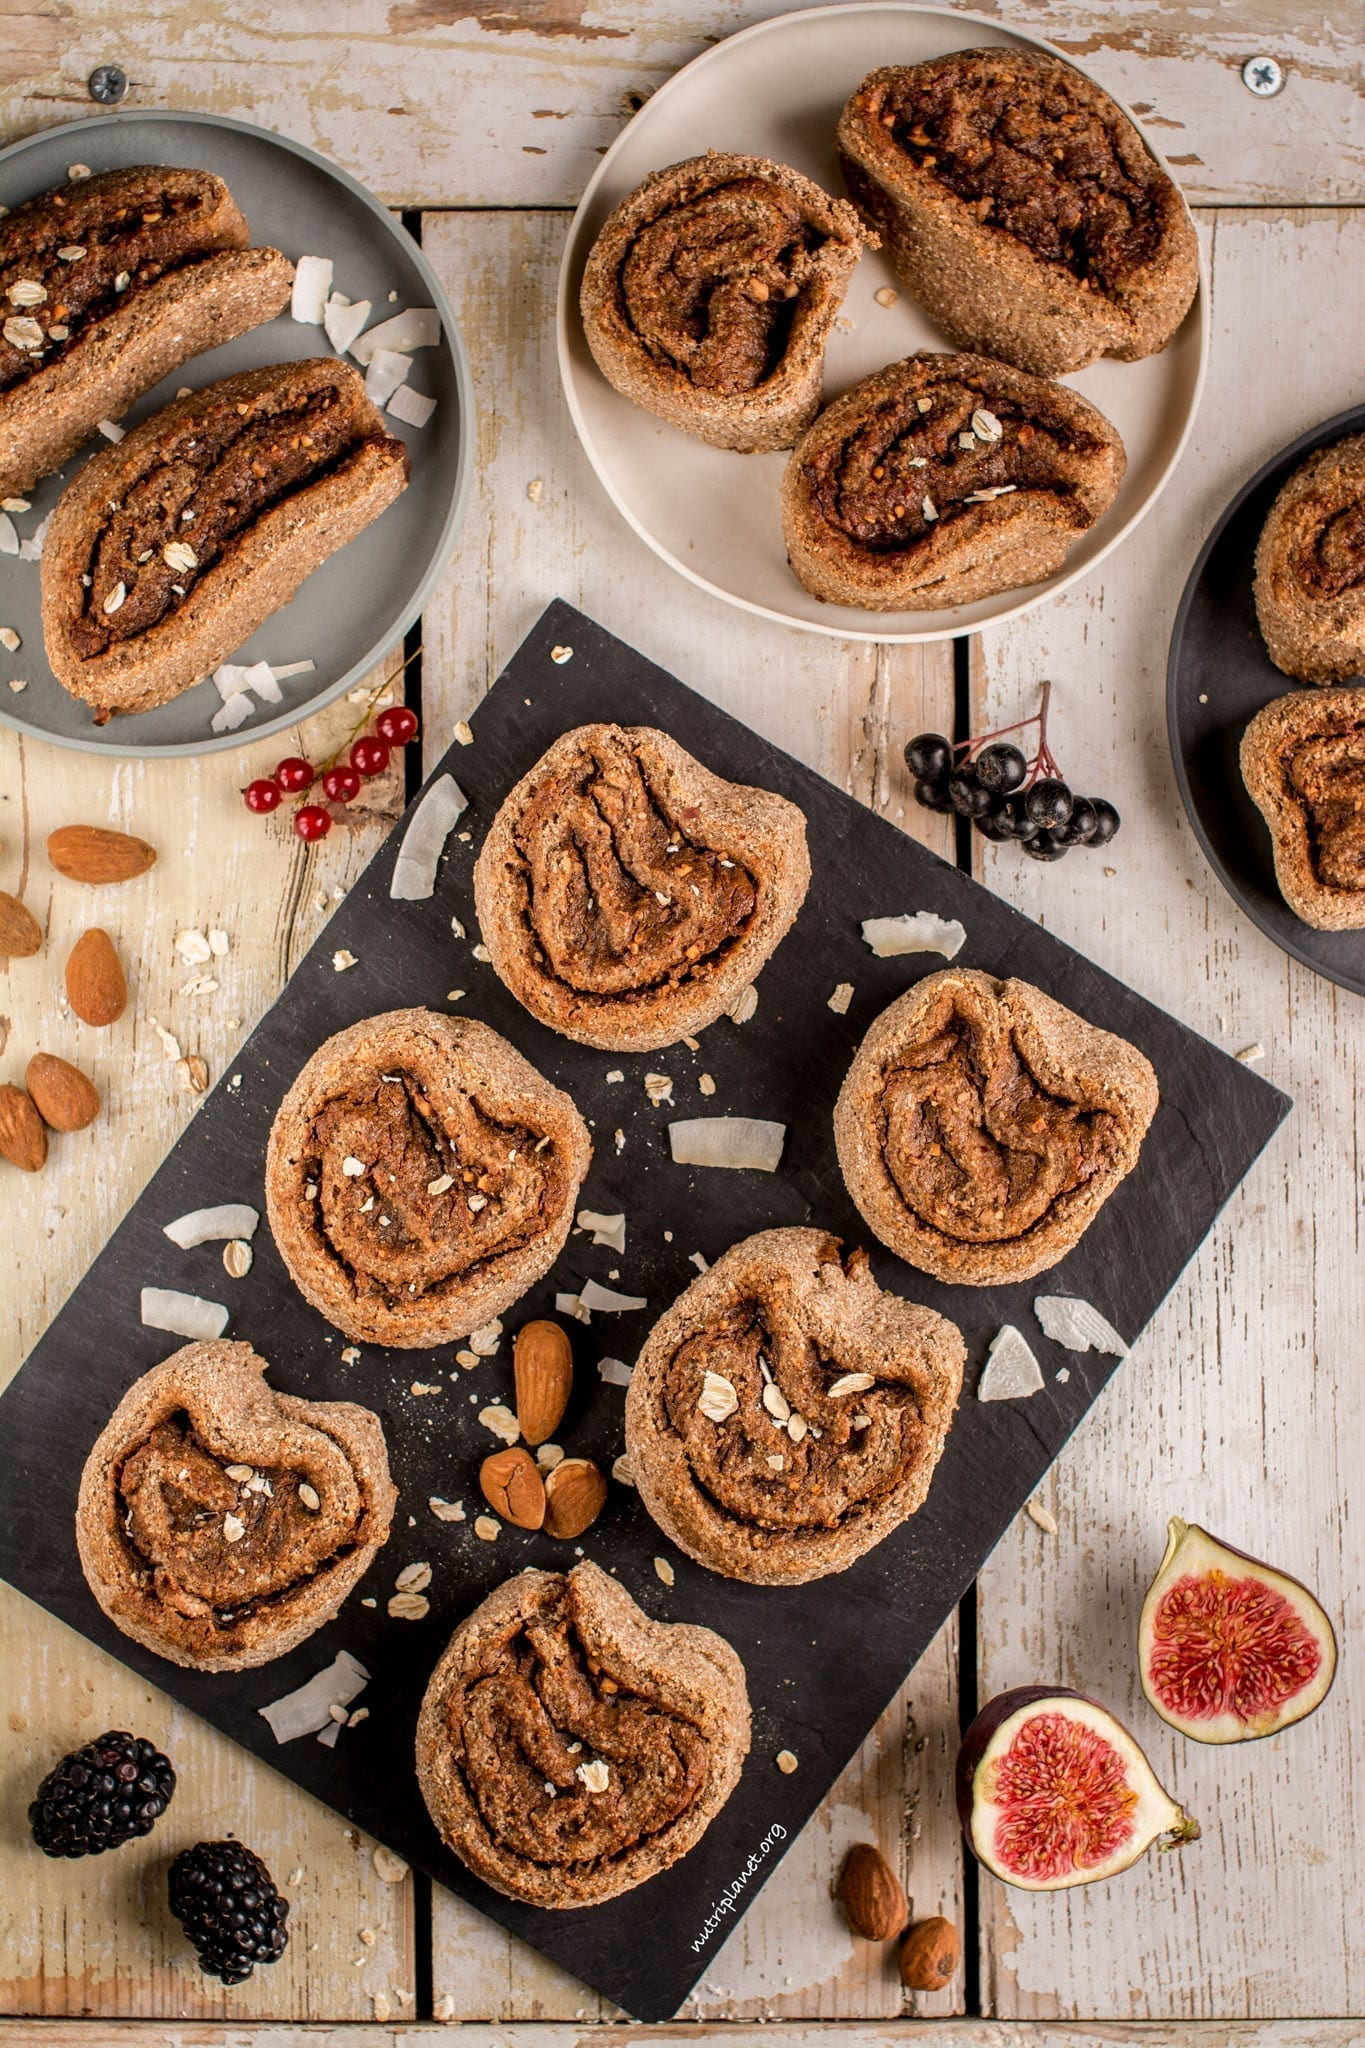 Gluten-Free No Yeast Vegan Cinnamon Rolls Recipe